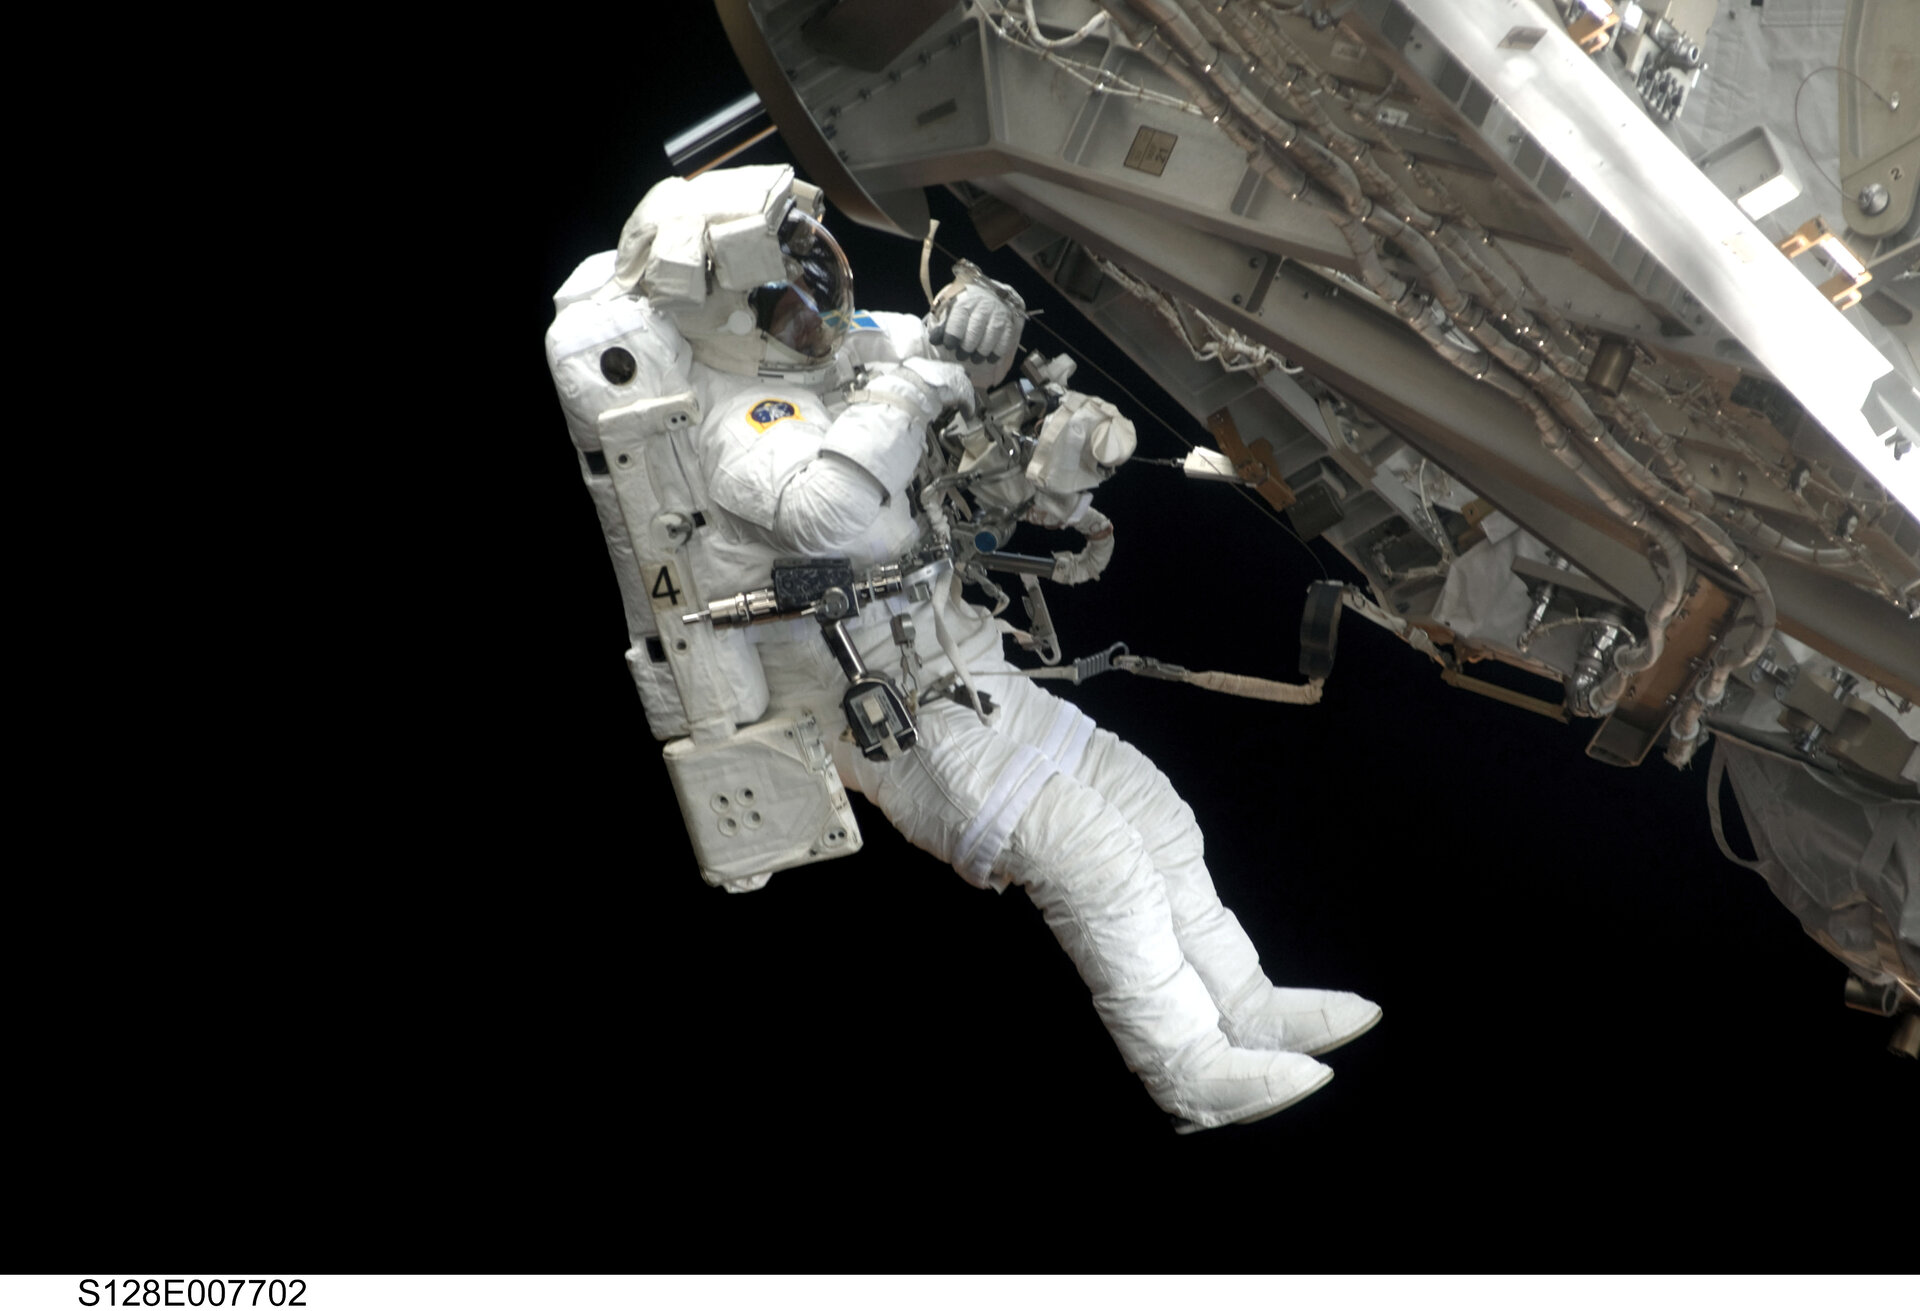 Christer Fuglesang's spacewalk